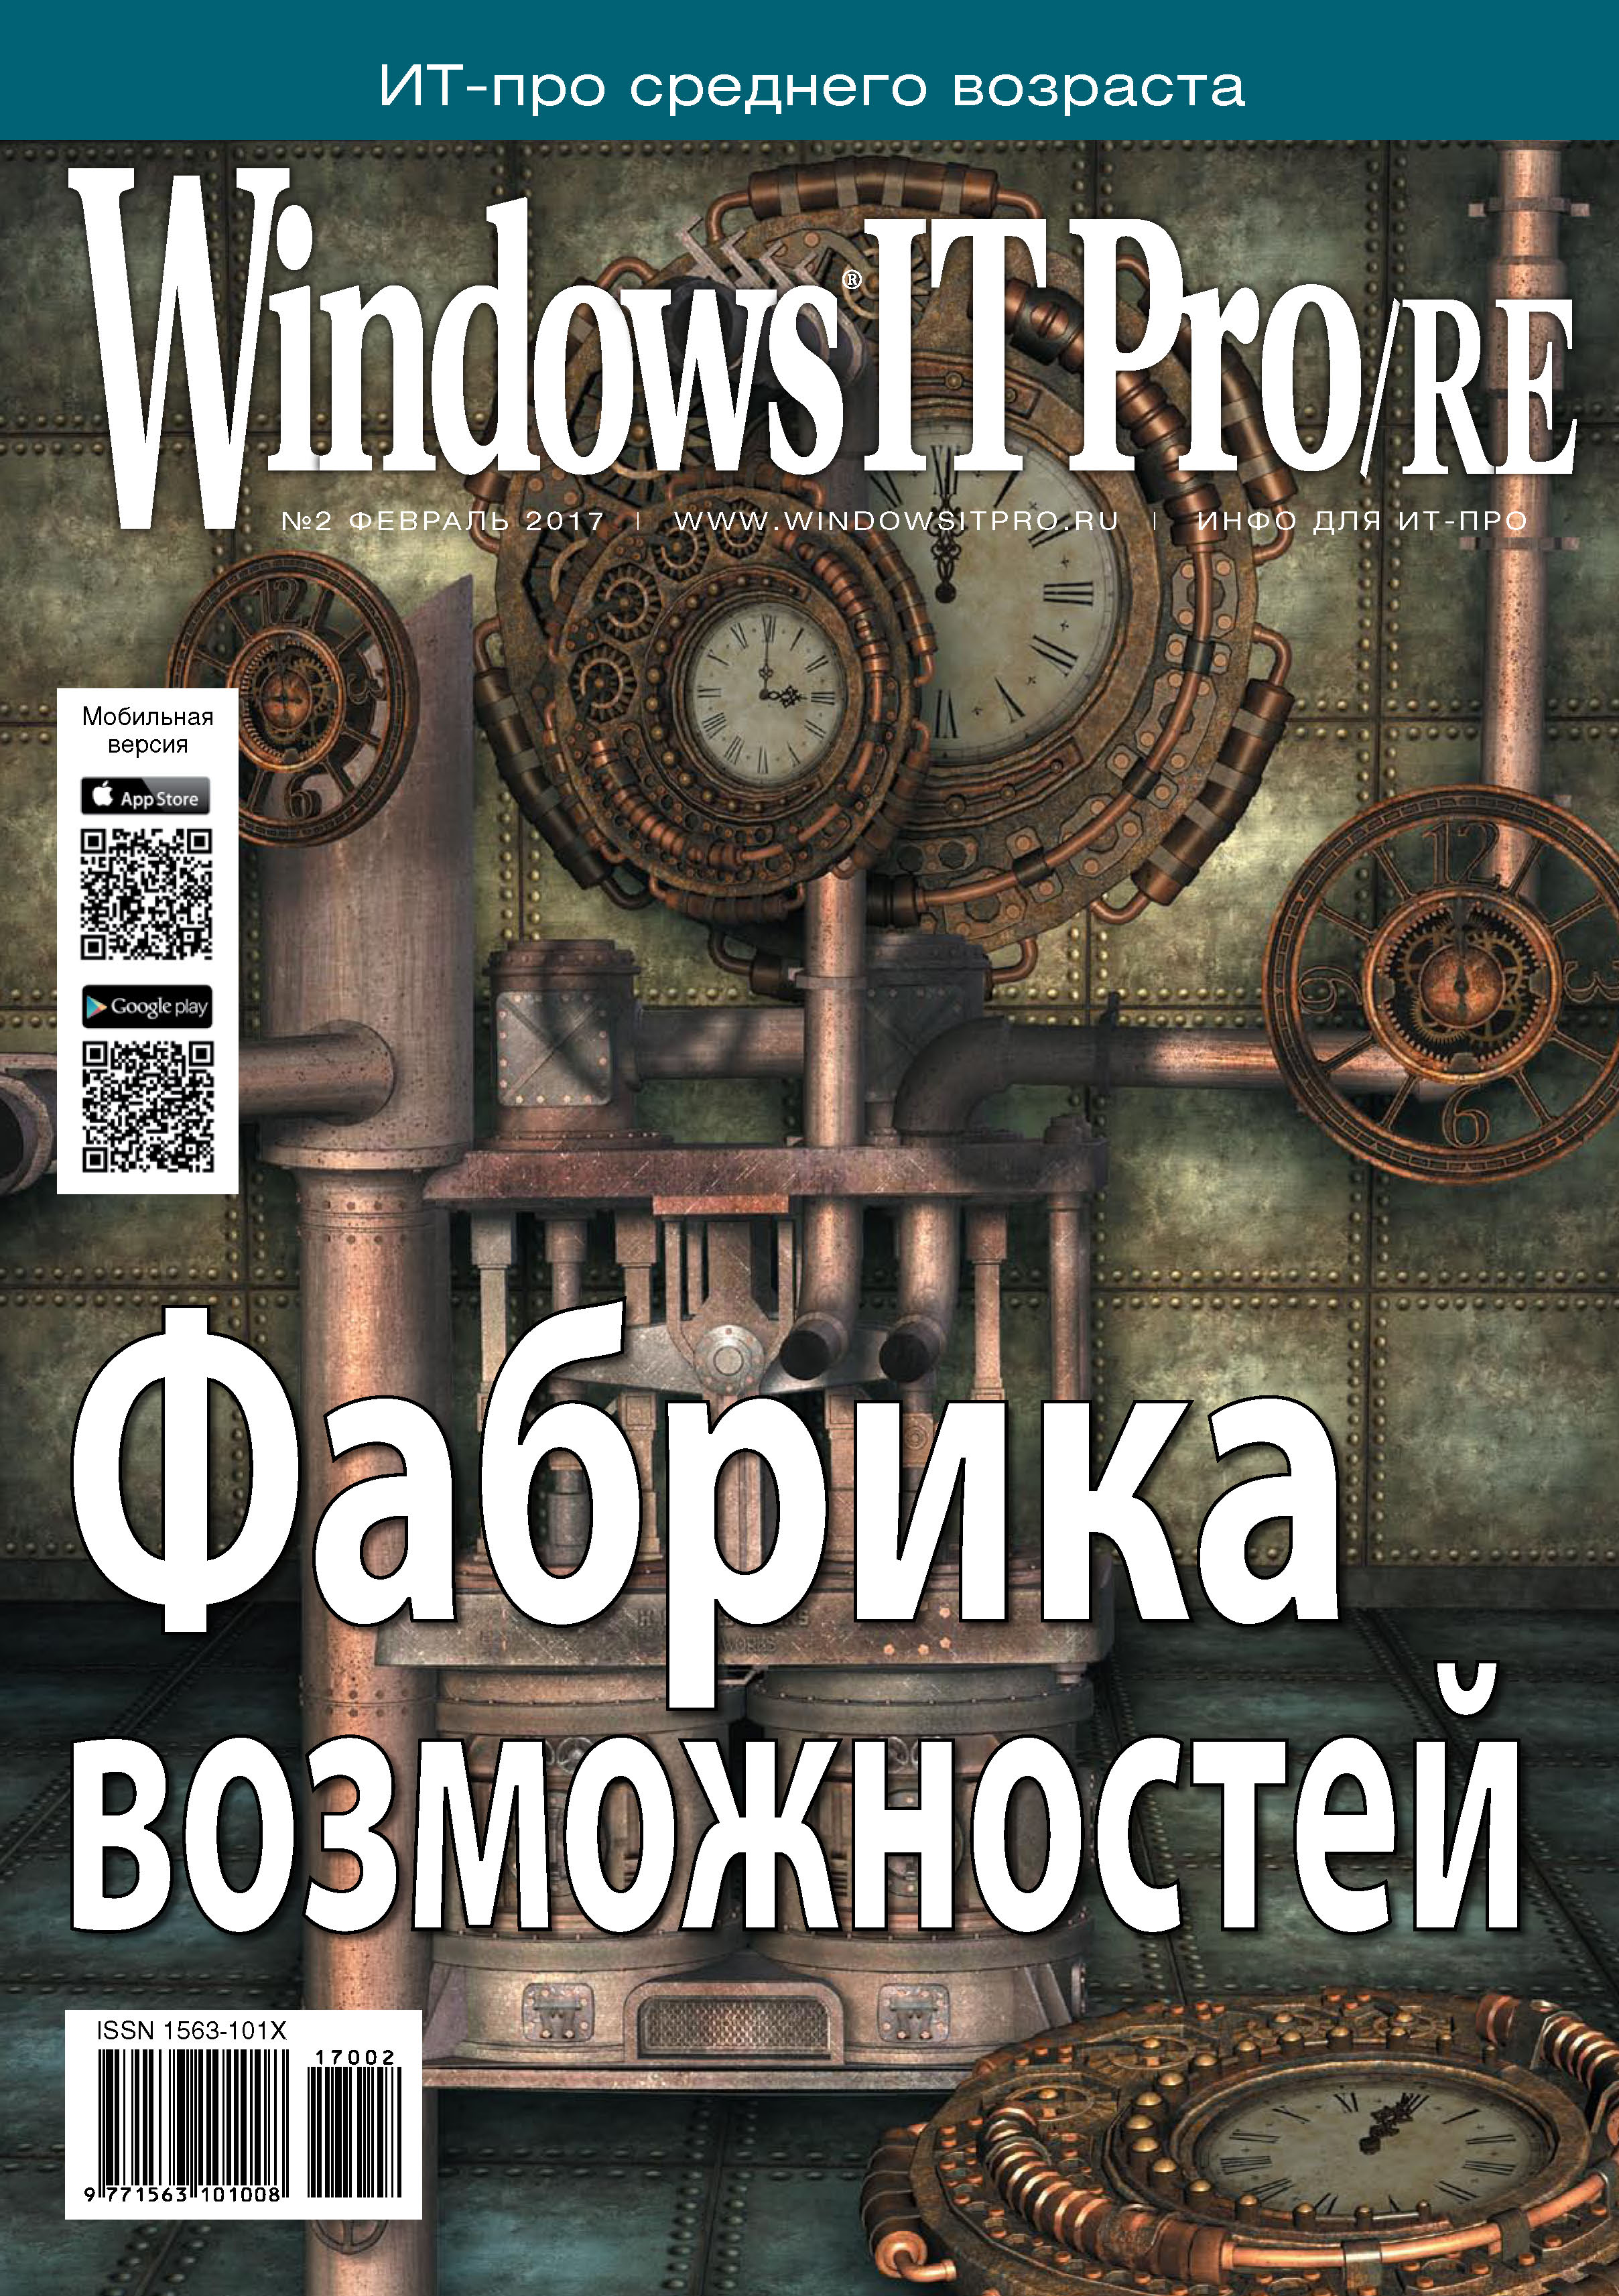 Открытые системы Windows IT Pro/RE №02/2017 total english advanced students book dvd rom